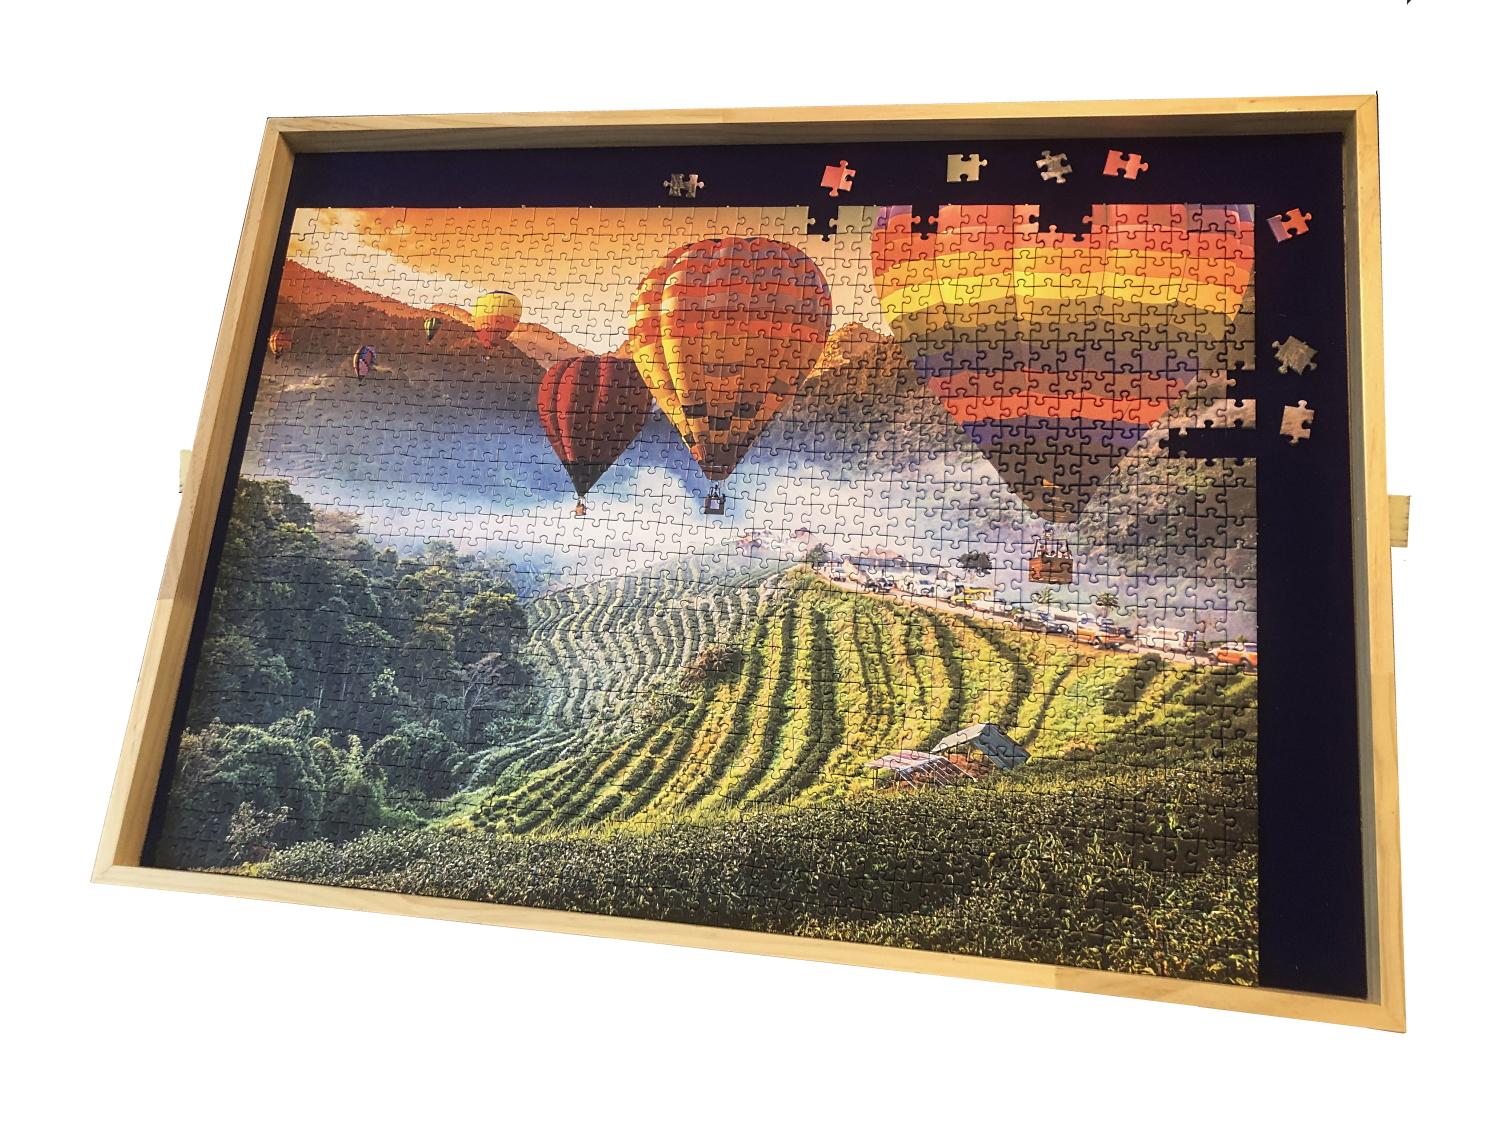 https://data.my-puzzle.fr/jig-and-puz.185/jig-puz-puzzle-table-100-a-1000-pieces.83069-2.fs.jpg